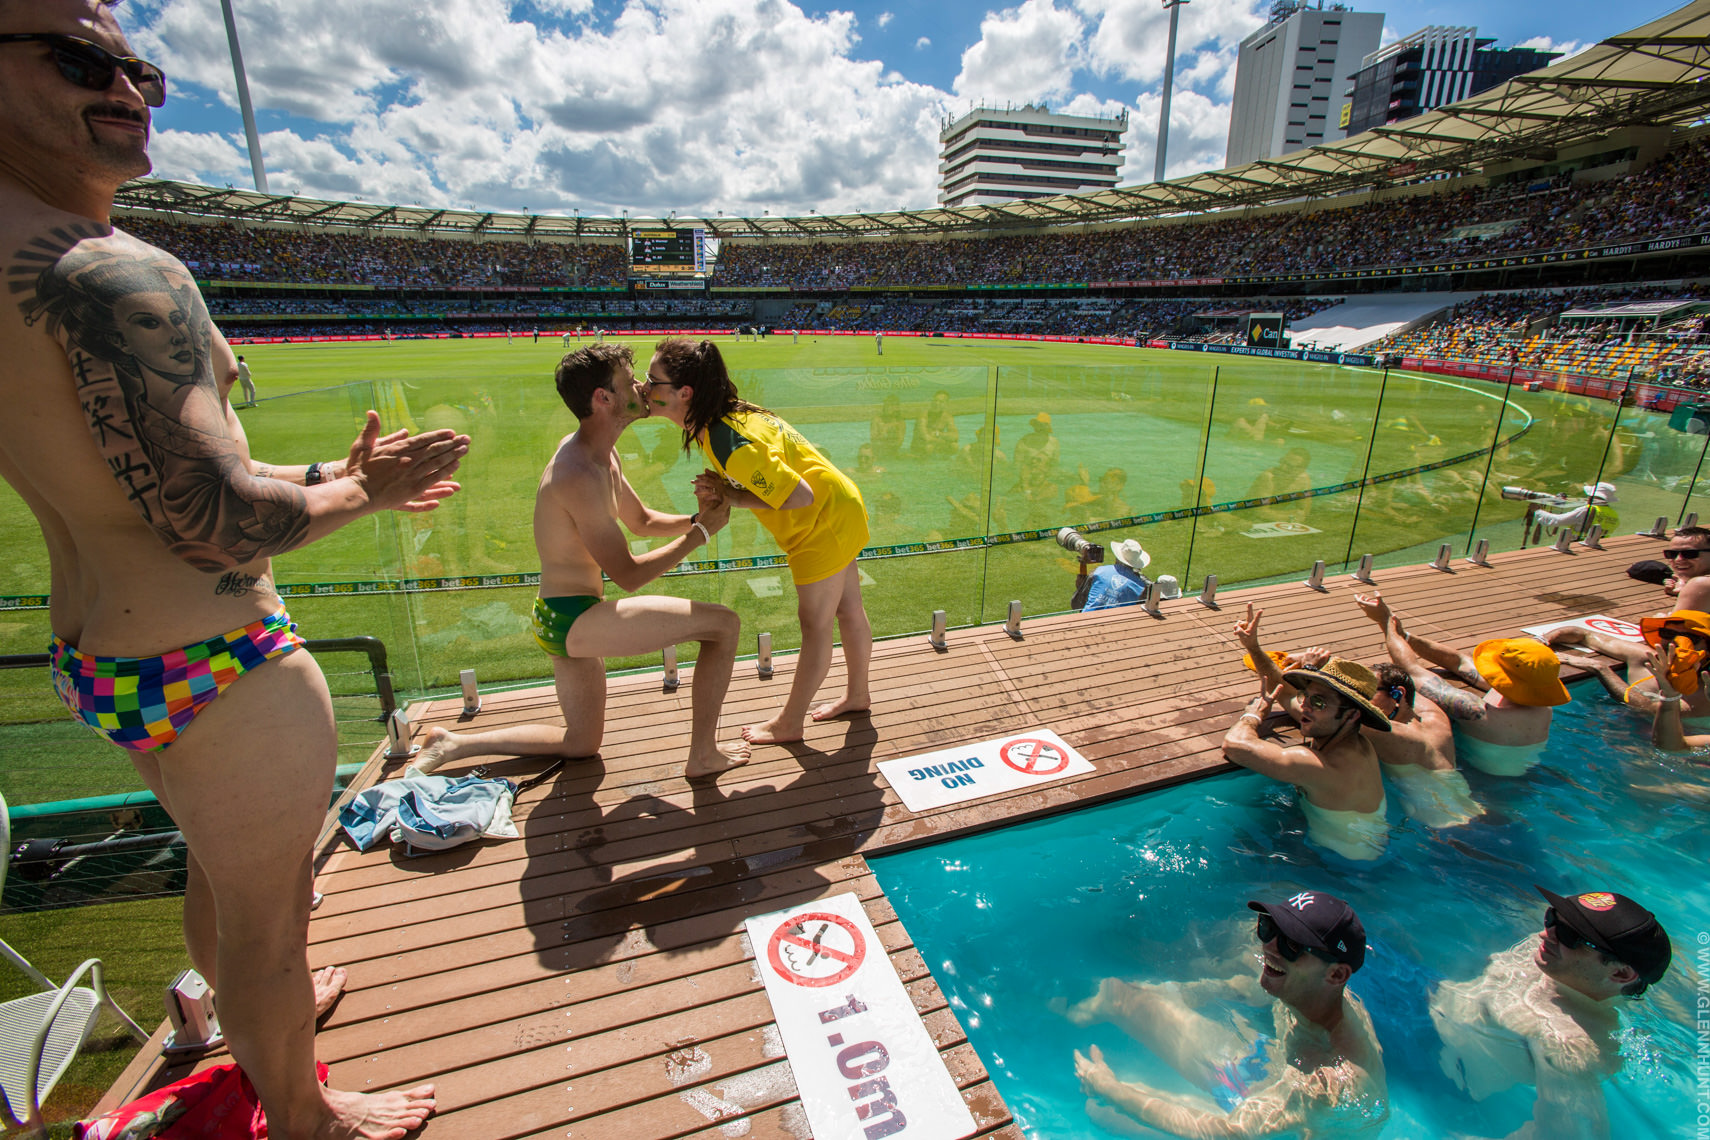 Proposal at the Cricket